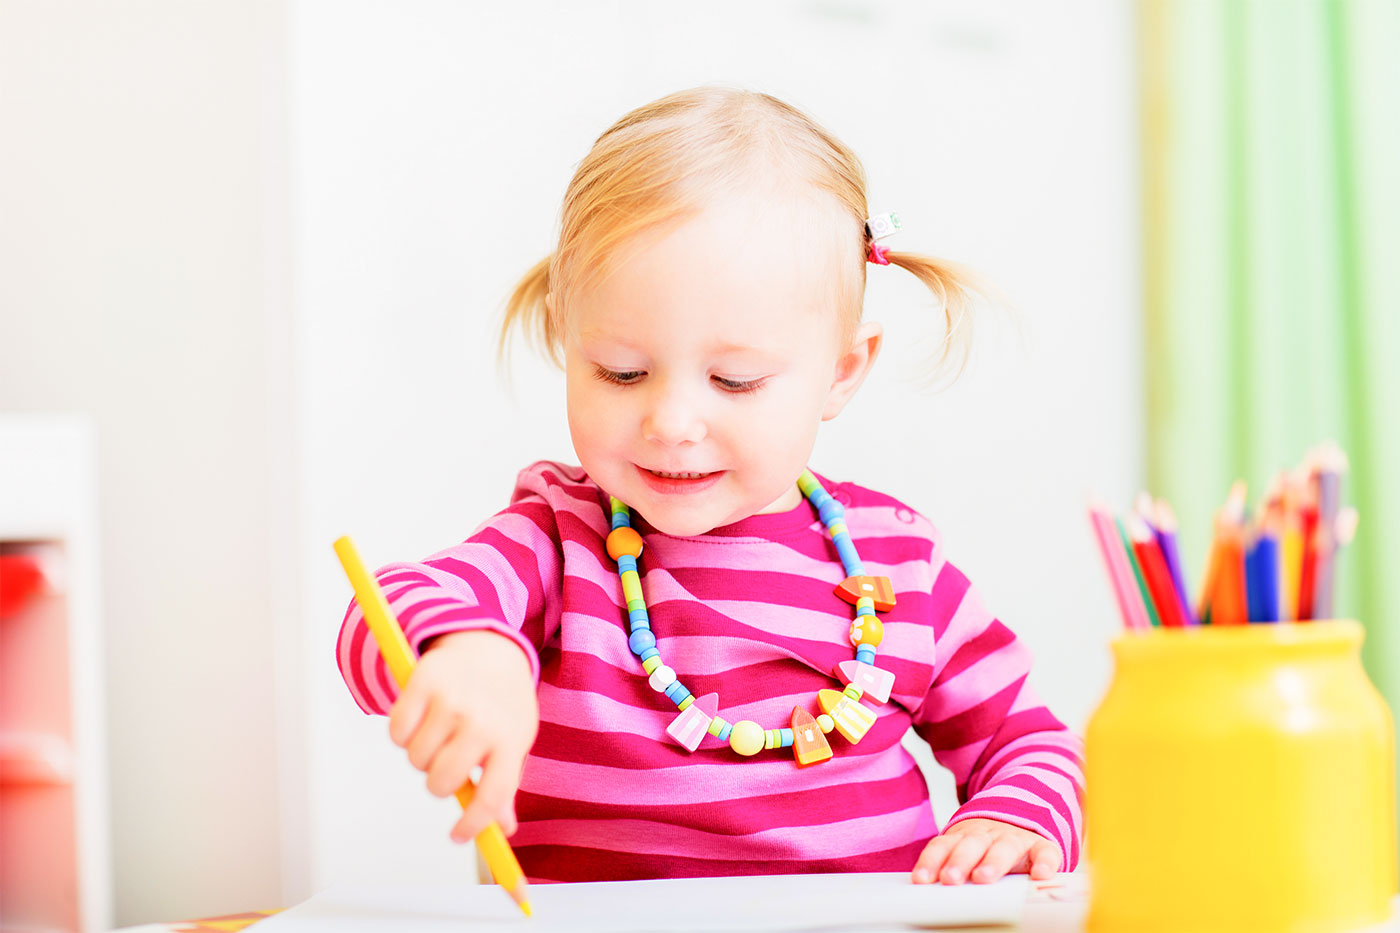 Most parents use a reward system for kids, from potty training to chores. Here's why you shouldn't reward your kids (and what to do instead):